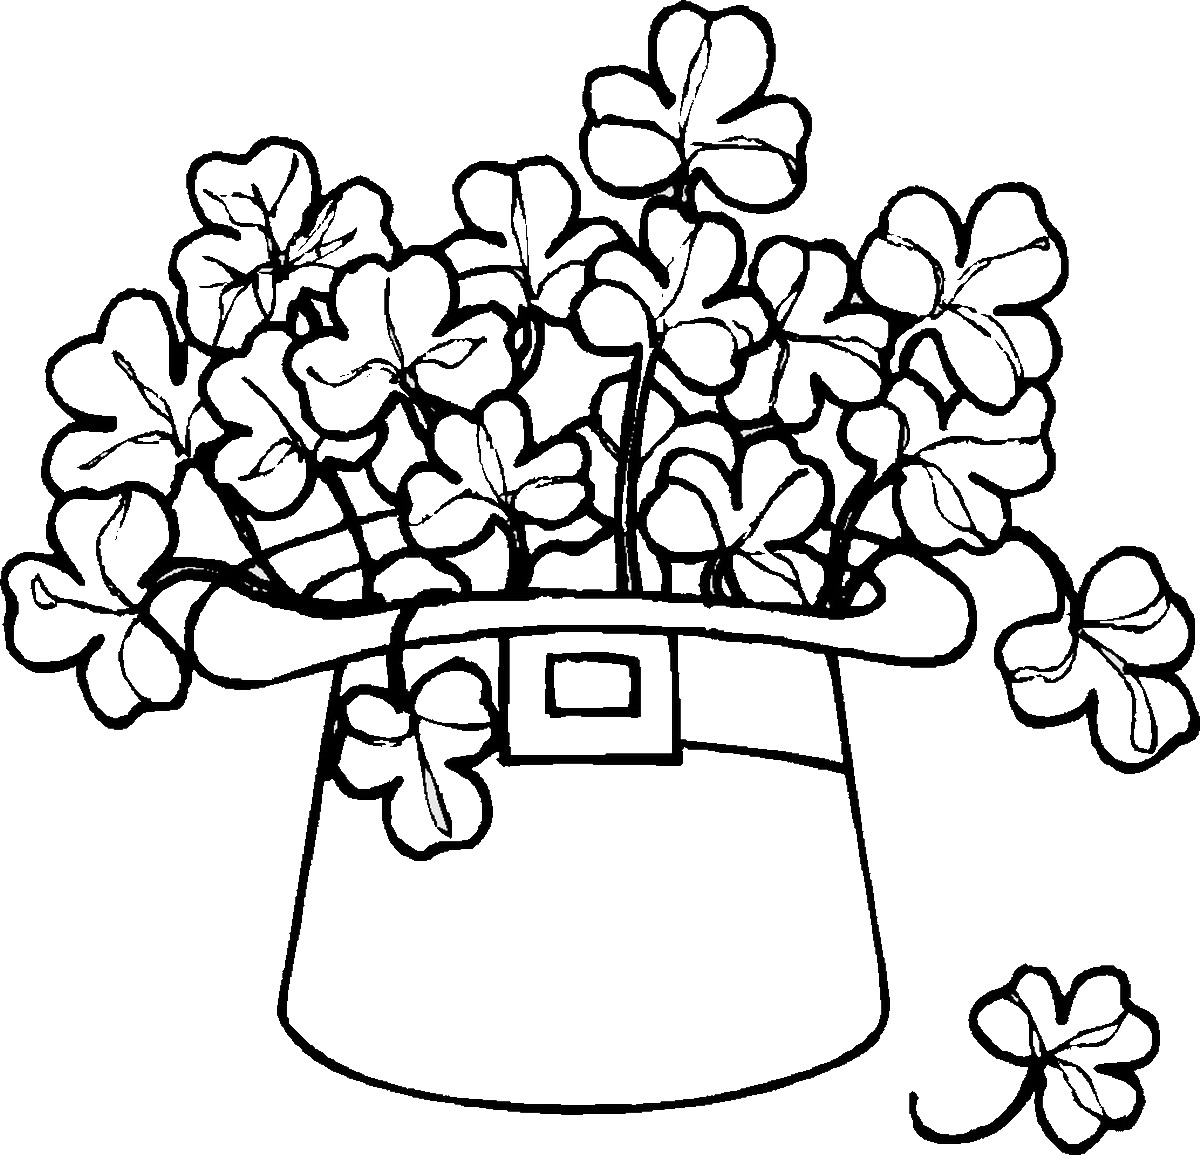 St Patrick\'s Day Coloring Pages for childrens printable for free